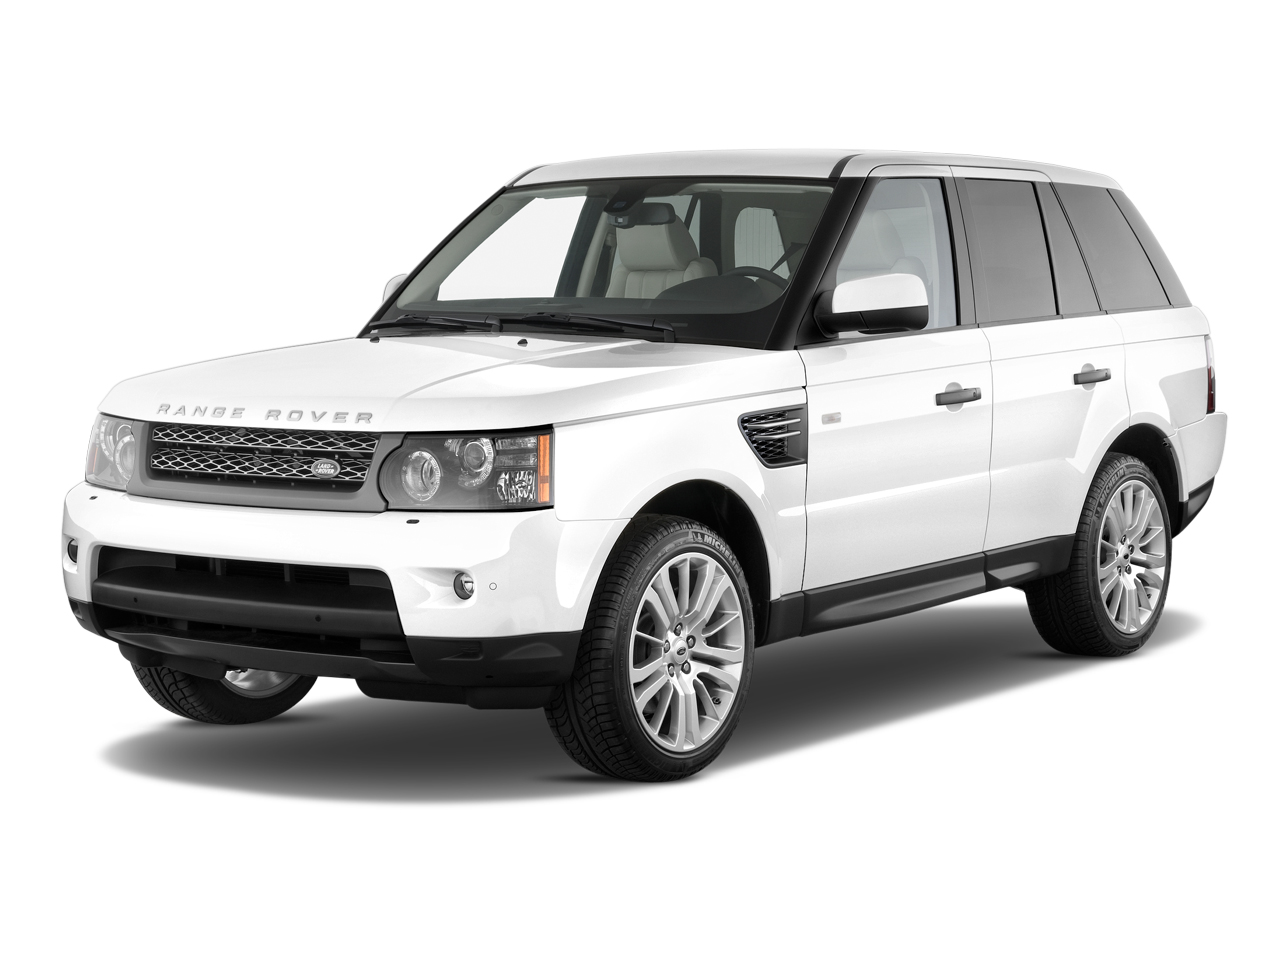 2011 land rover range rover sport review ratings specs prices and photos the car connection. Black Bedroom Furniture Sets. Home Design Ideas